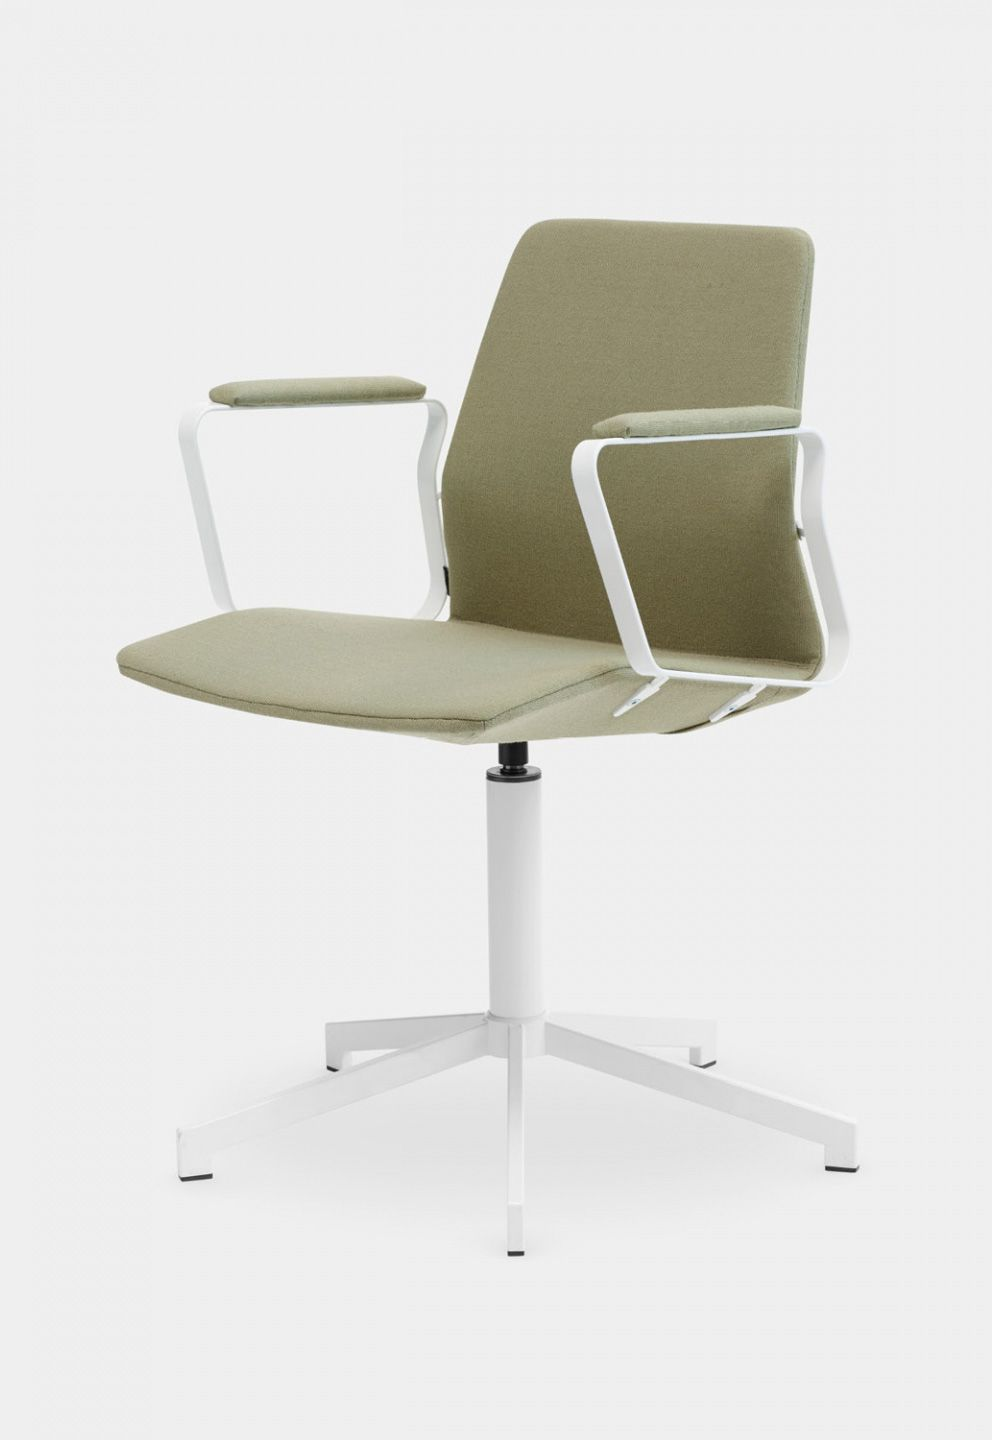 Lemanoosh Mid Century Modern Office Chair Office Chair Design Furniture